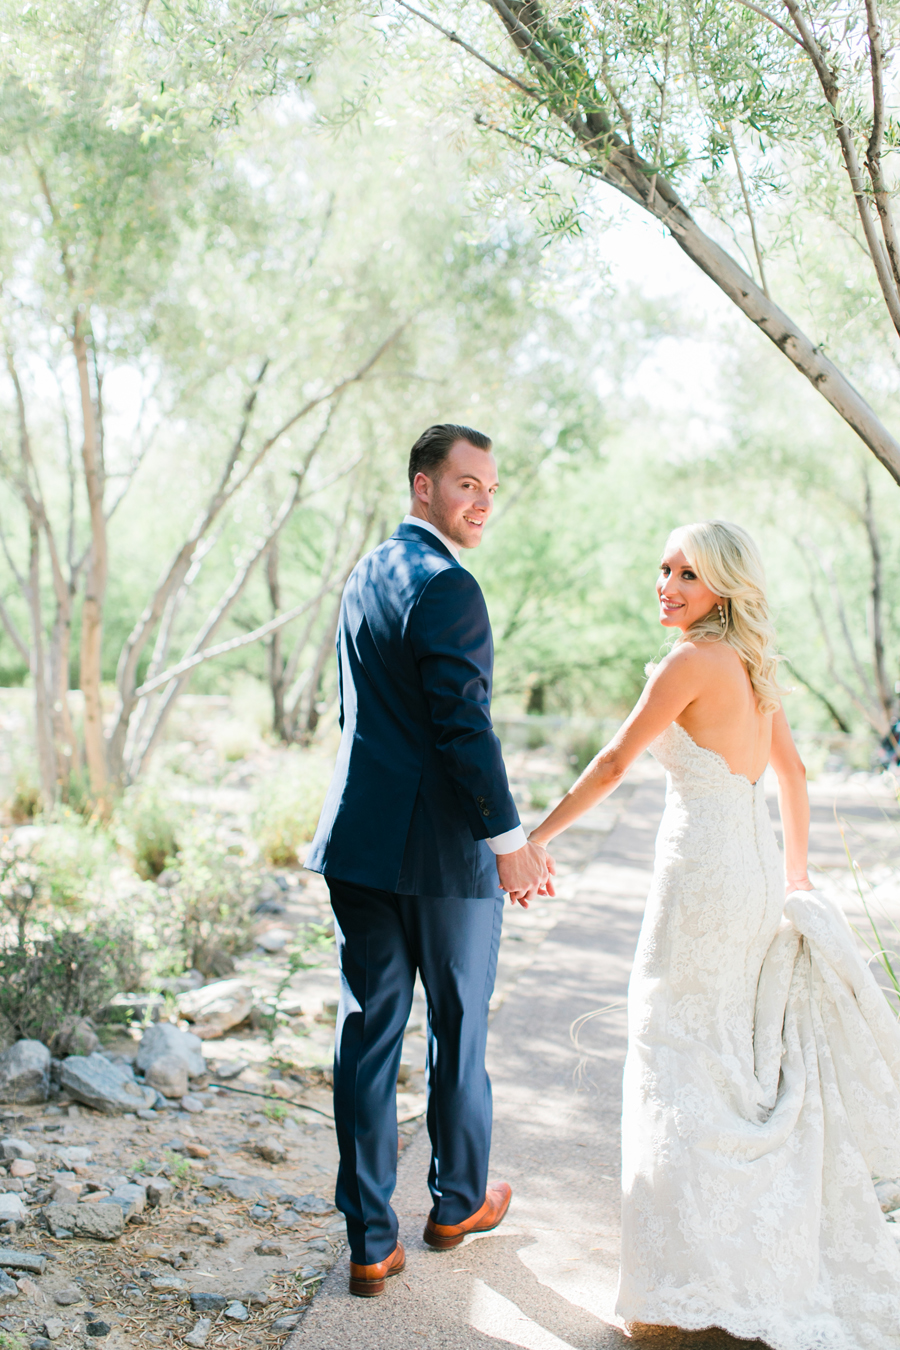 Tuscan Inspired Wedding in Scottsdale - Artistrie Co.